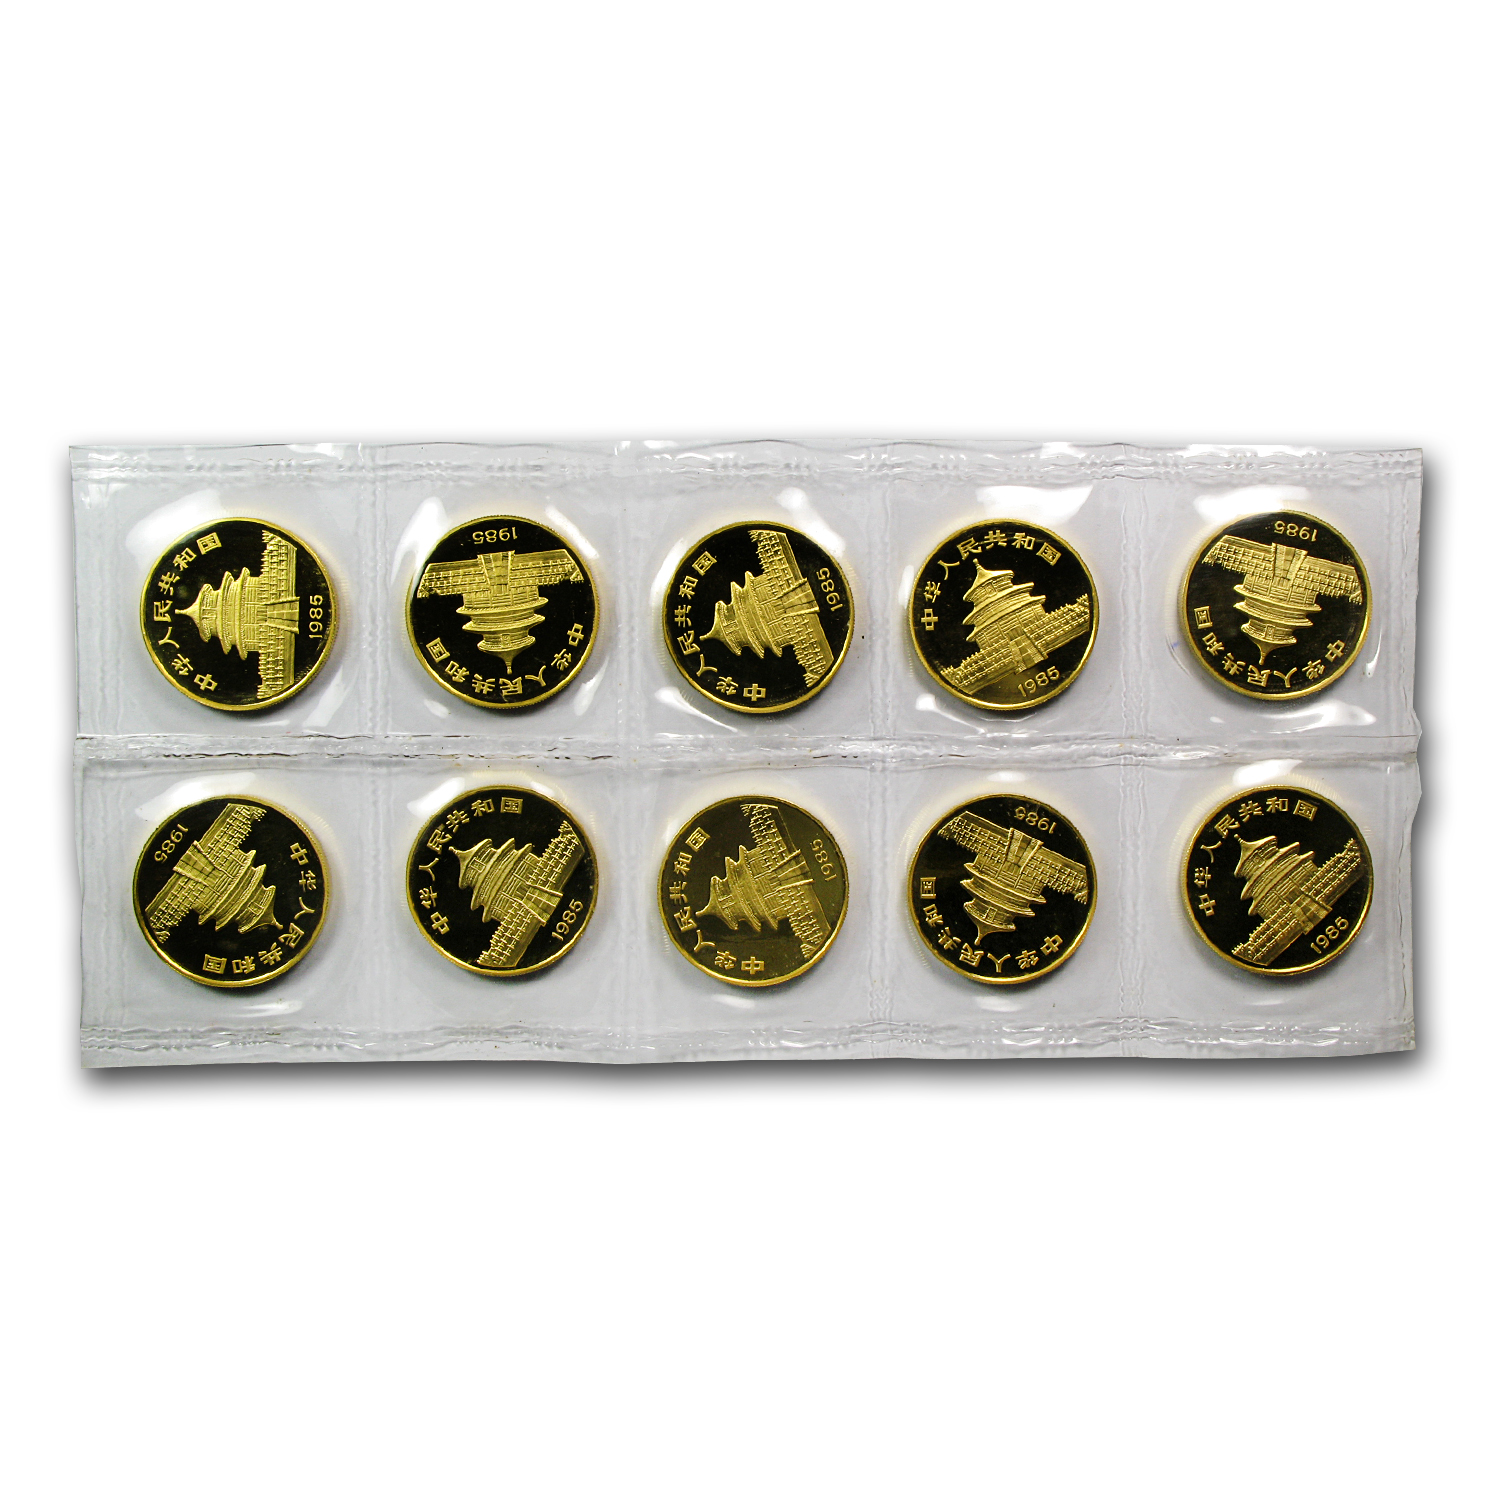 1985 China 1 oz Gold Panda BU (Sealed Sheet of 10)